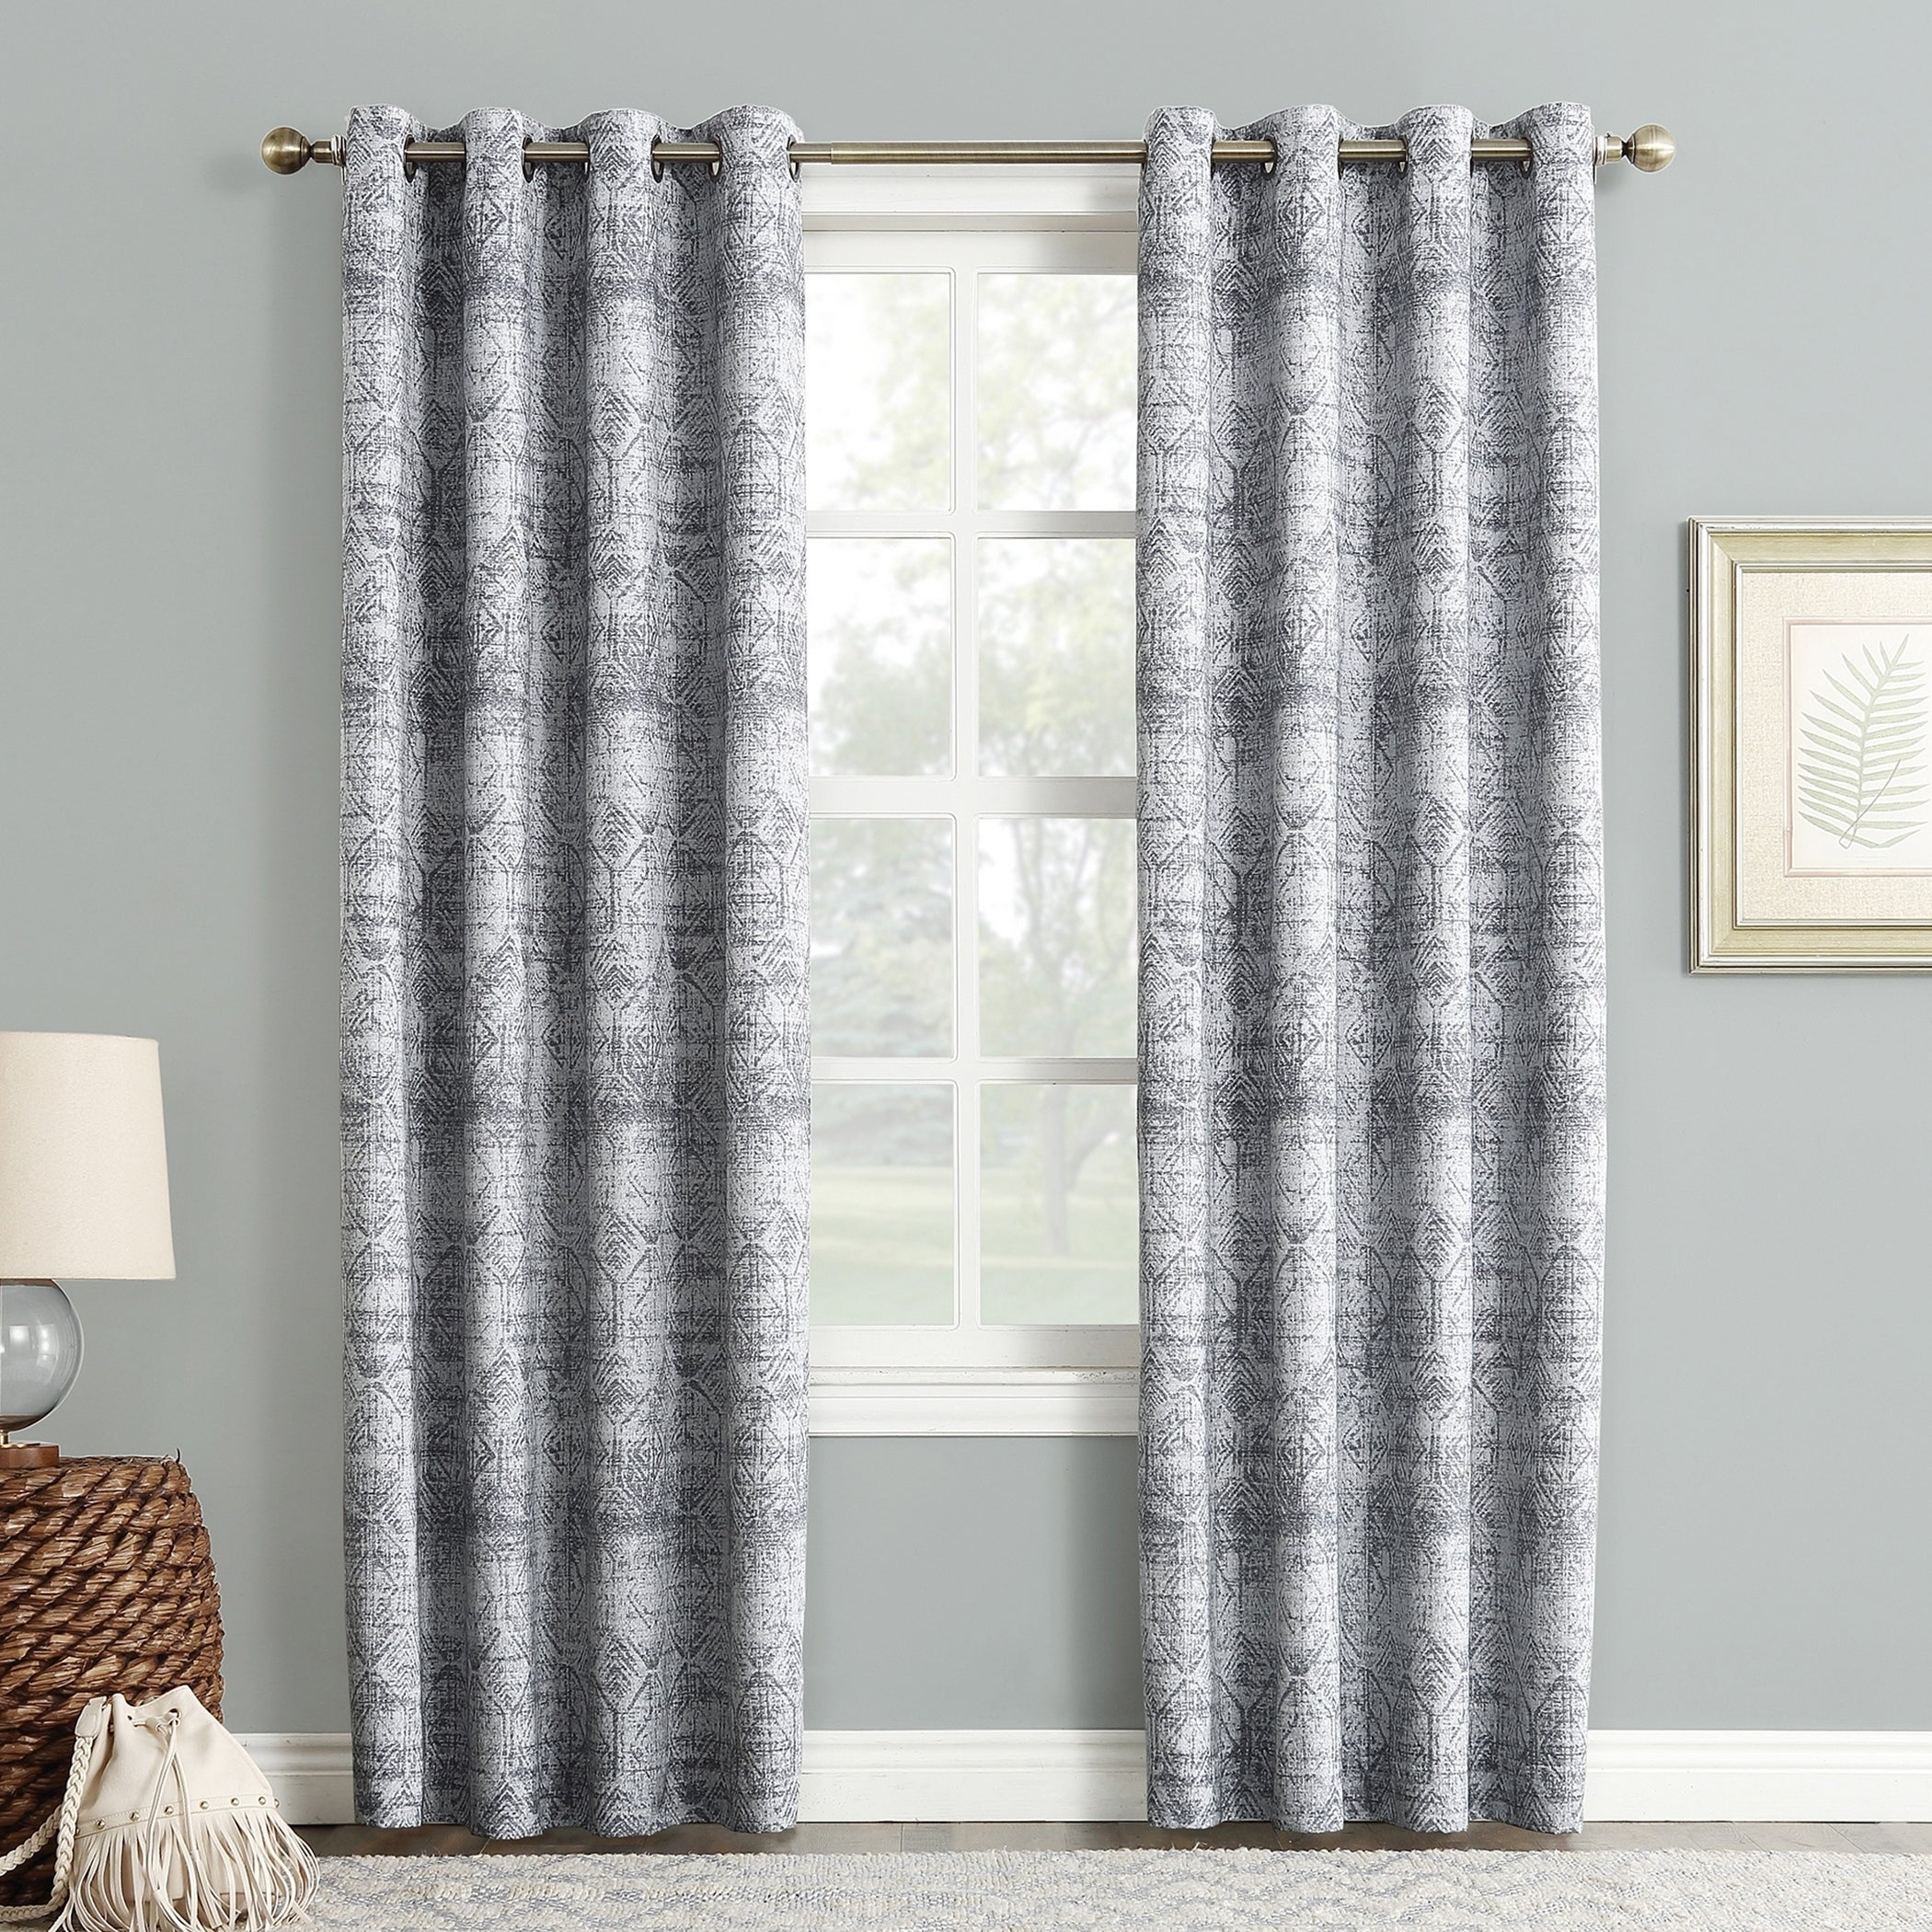 Sun Zero Darren Distressed Global Blackout Lined Grommet Curtain Panel Inside Lined Grommet Curtain Panels (View 2 of 20)